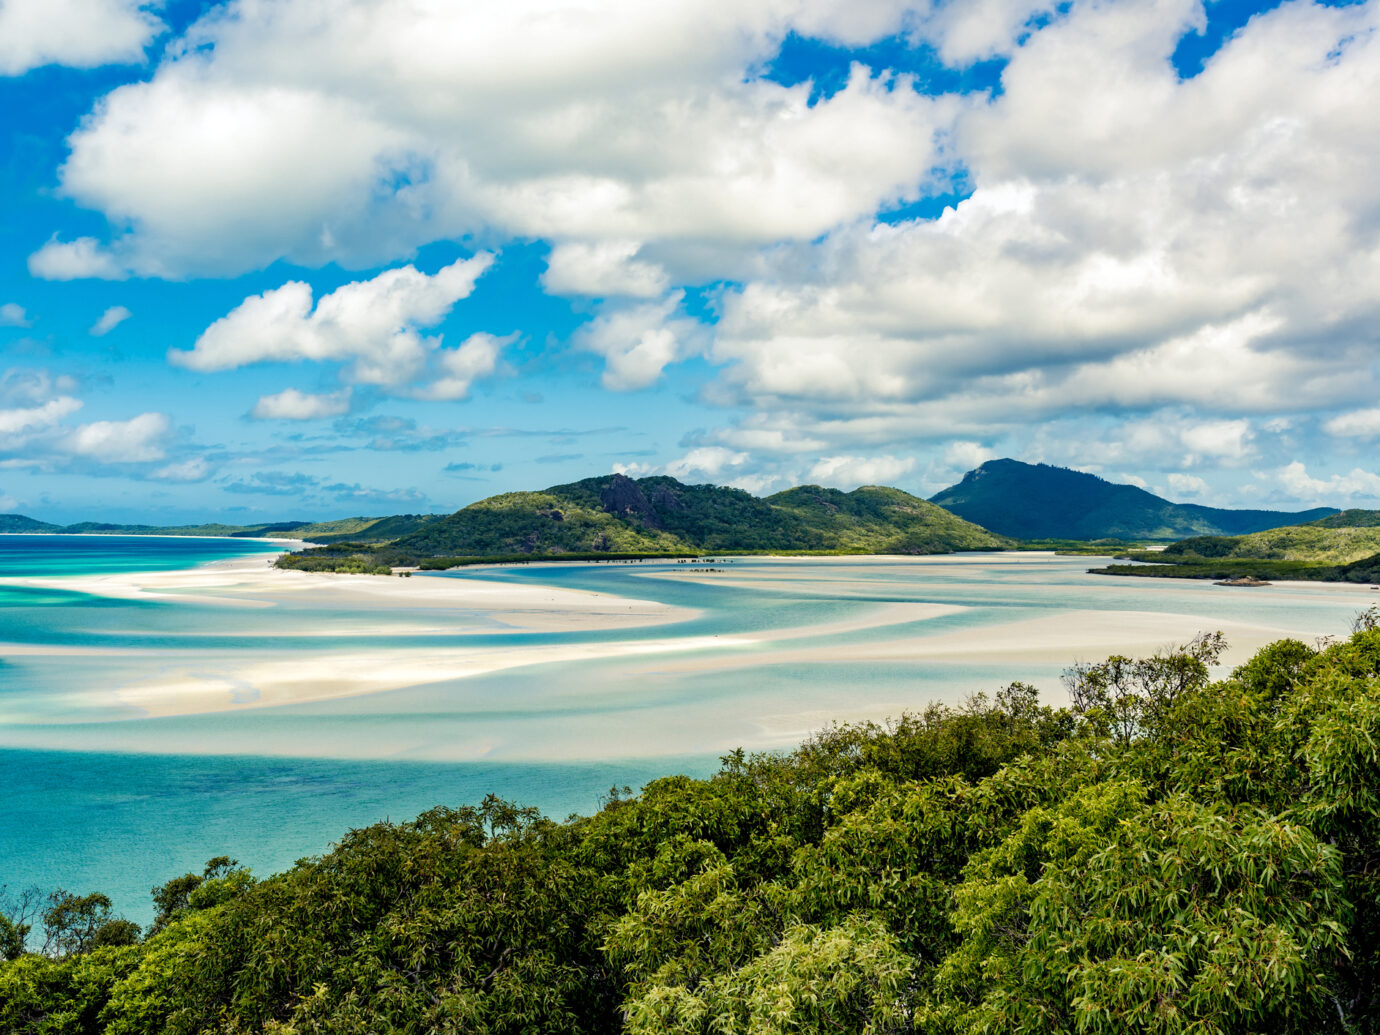 Airlie Beach of the Whitsundays, Australia